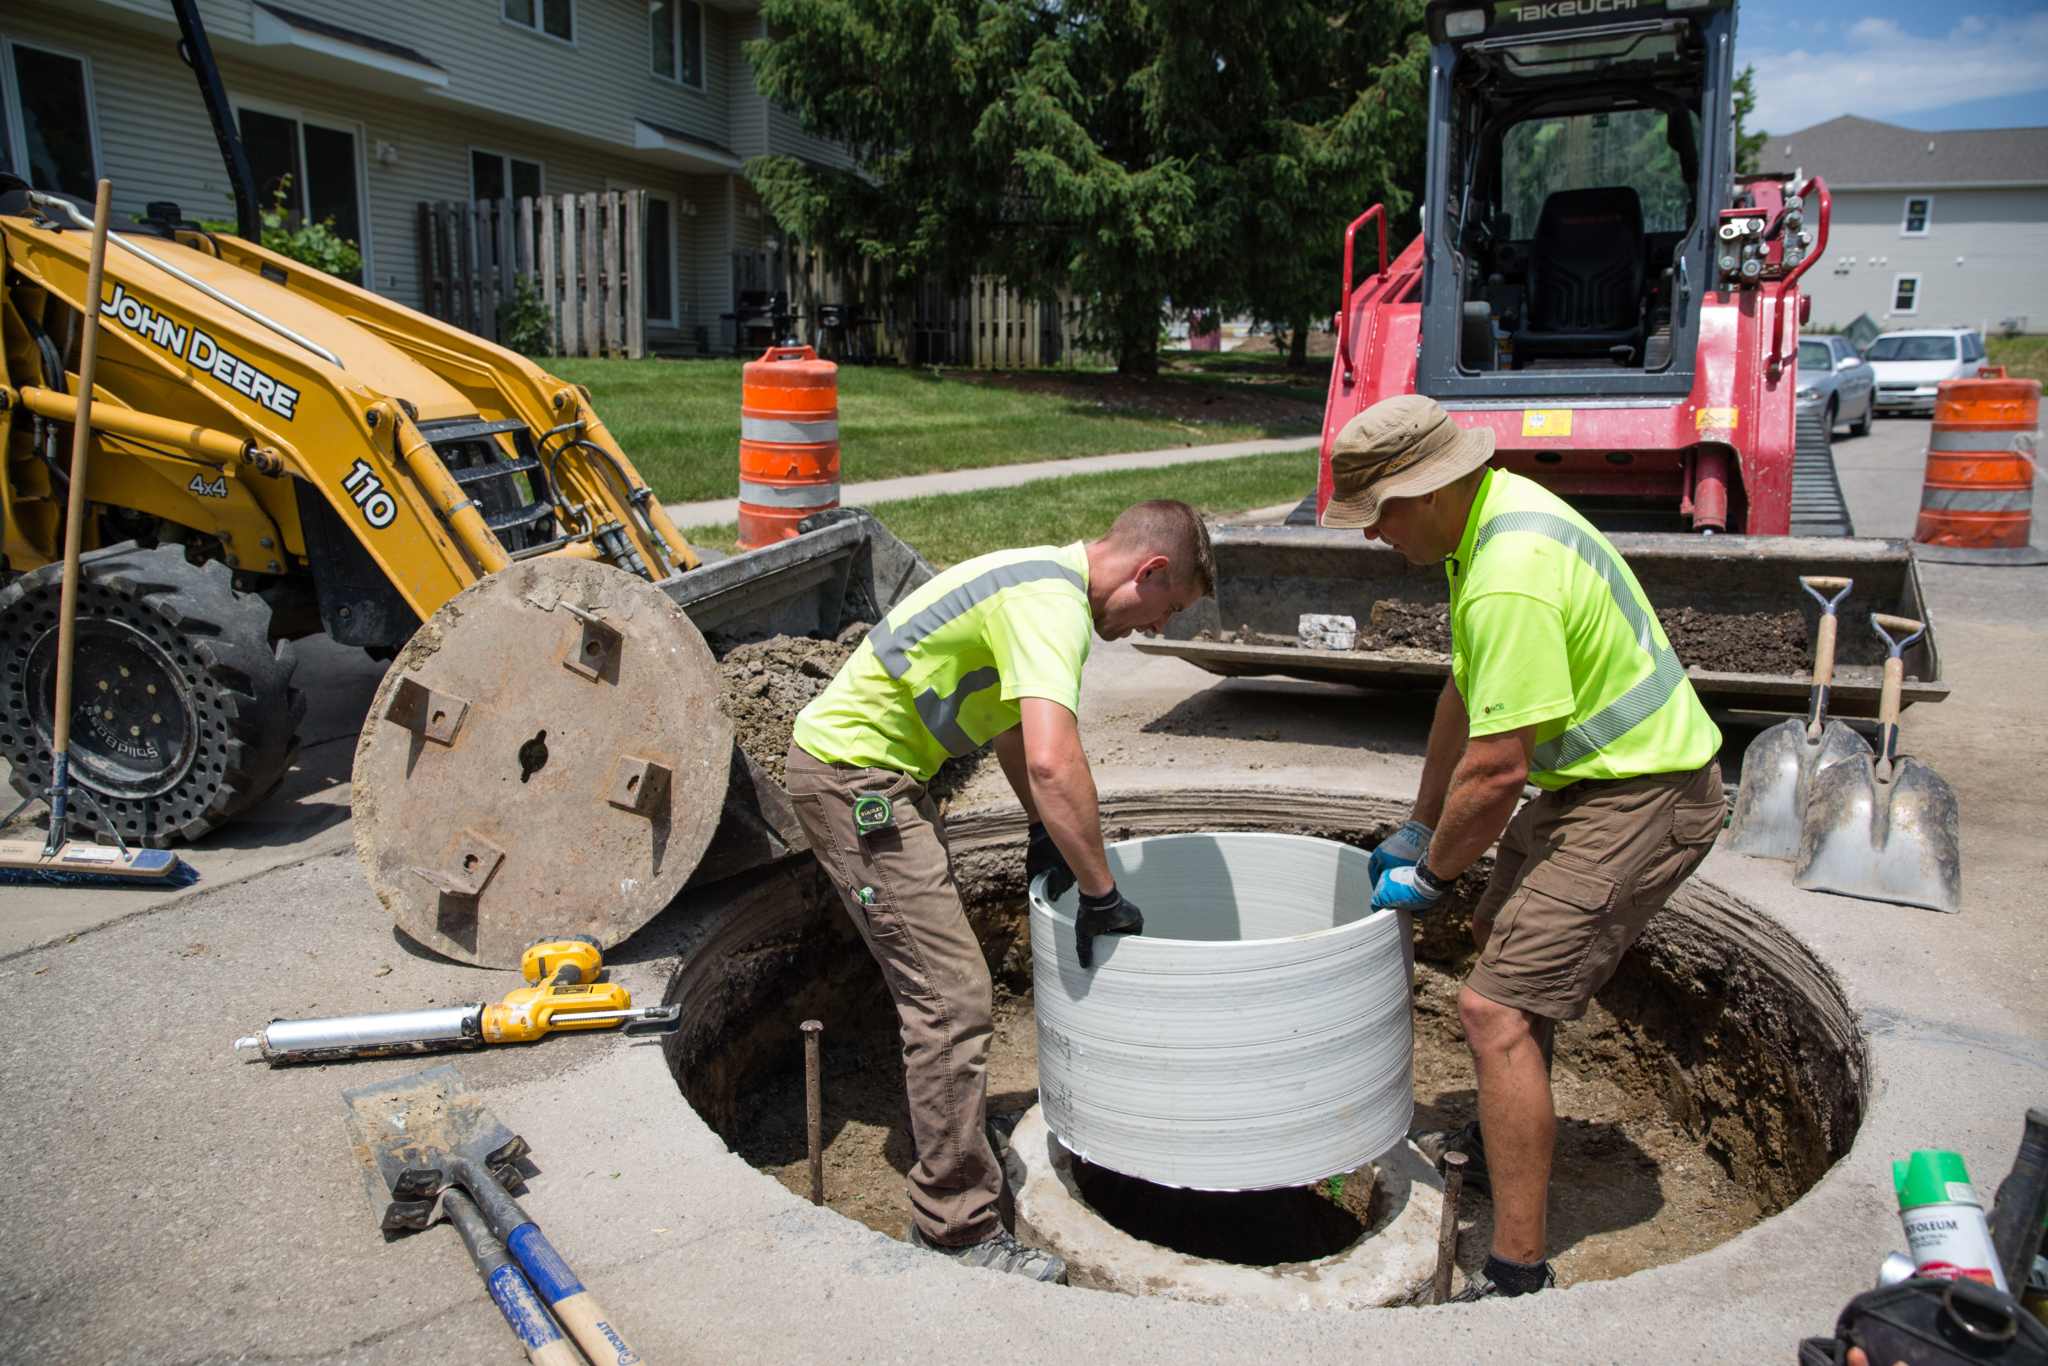 Shawn Kinney and Brad Steenhoek of Save Our Sewers, featured in the March issue, work on replacing a manhole in Ames, Iowa.